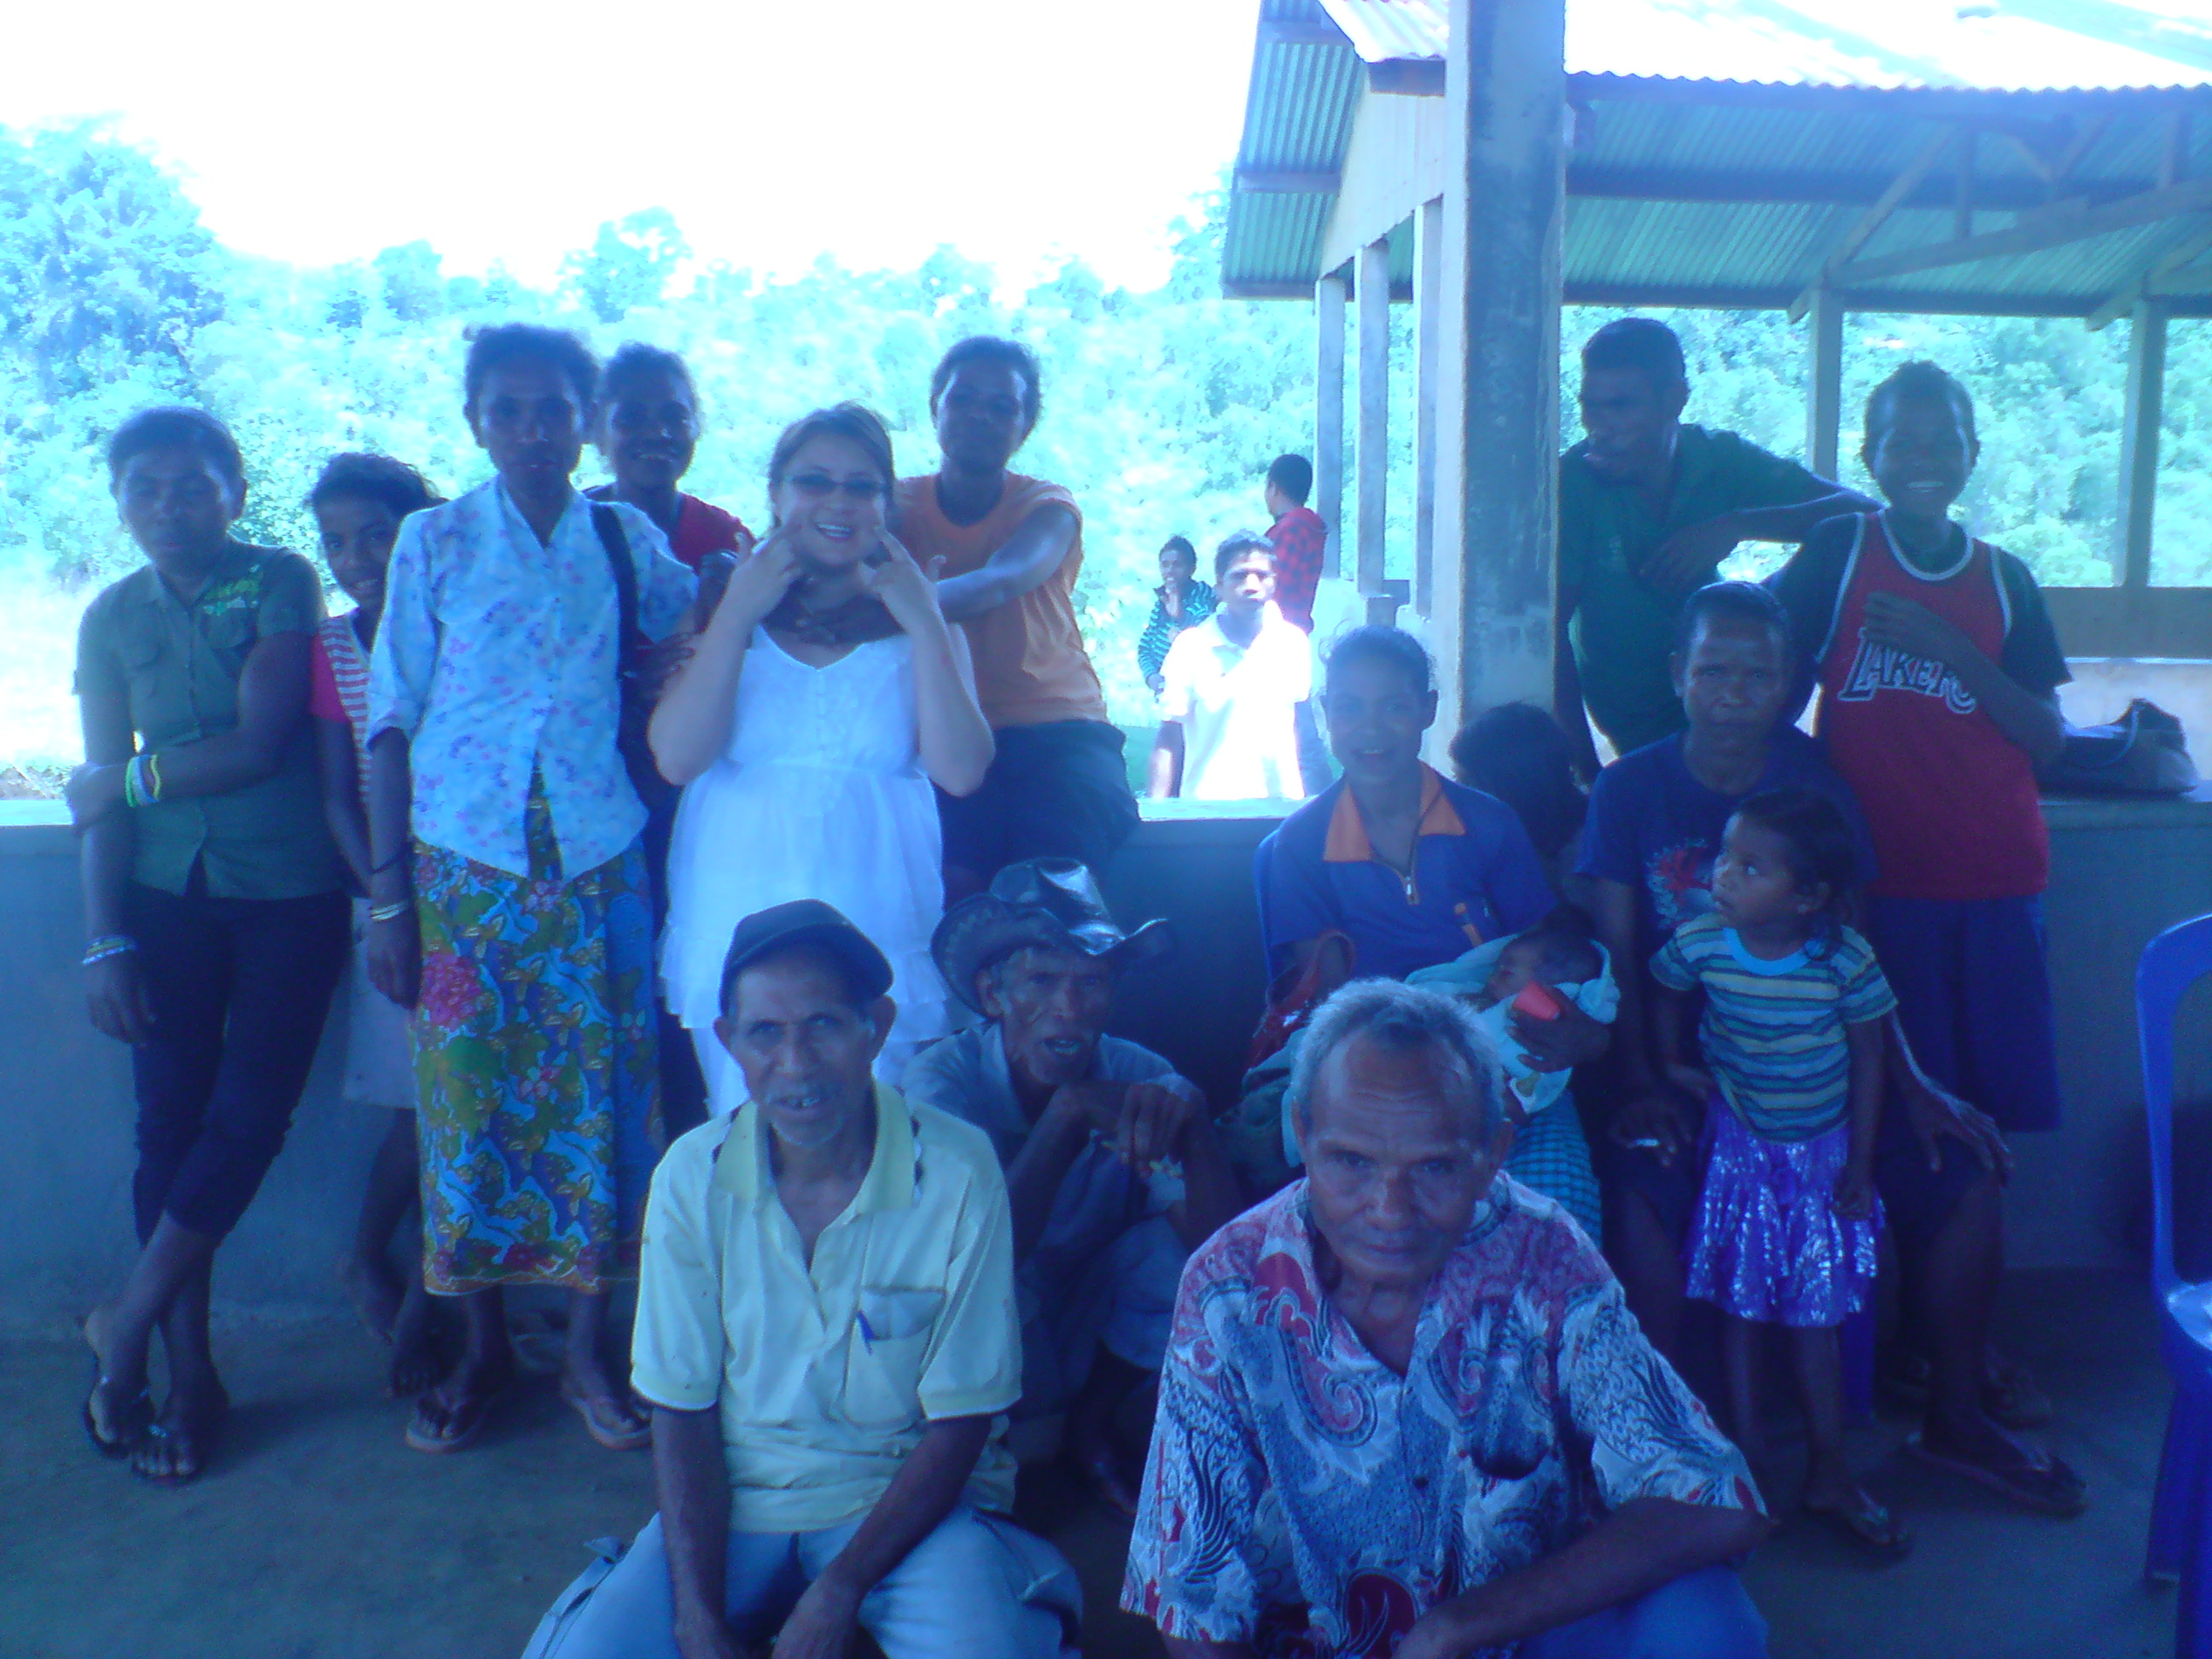 In East Timor with Farmers enrolling in the Small Business Course to Teach them how to run their micro businesses